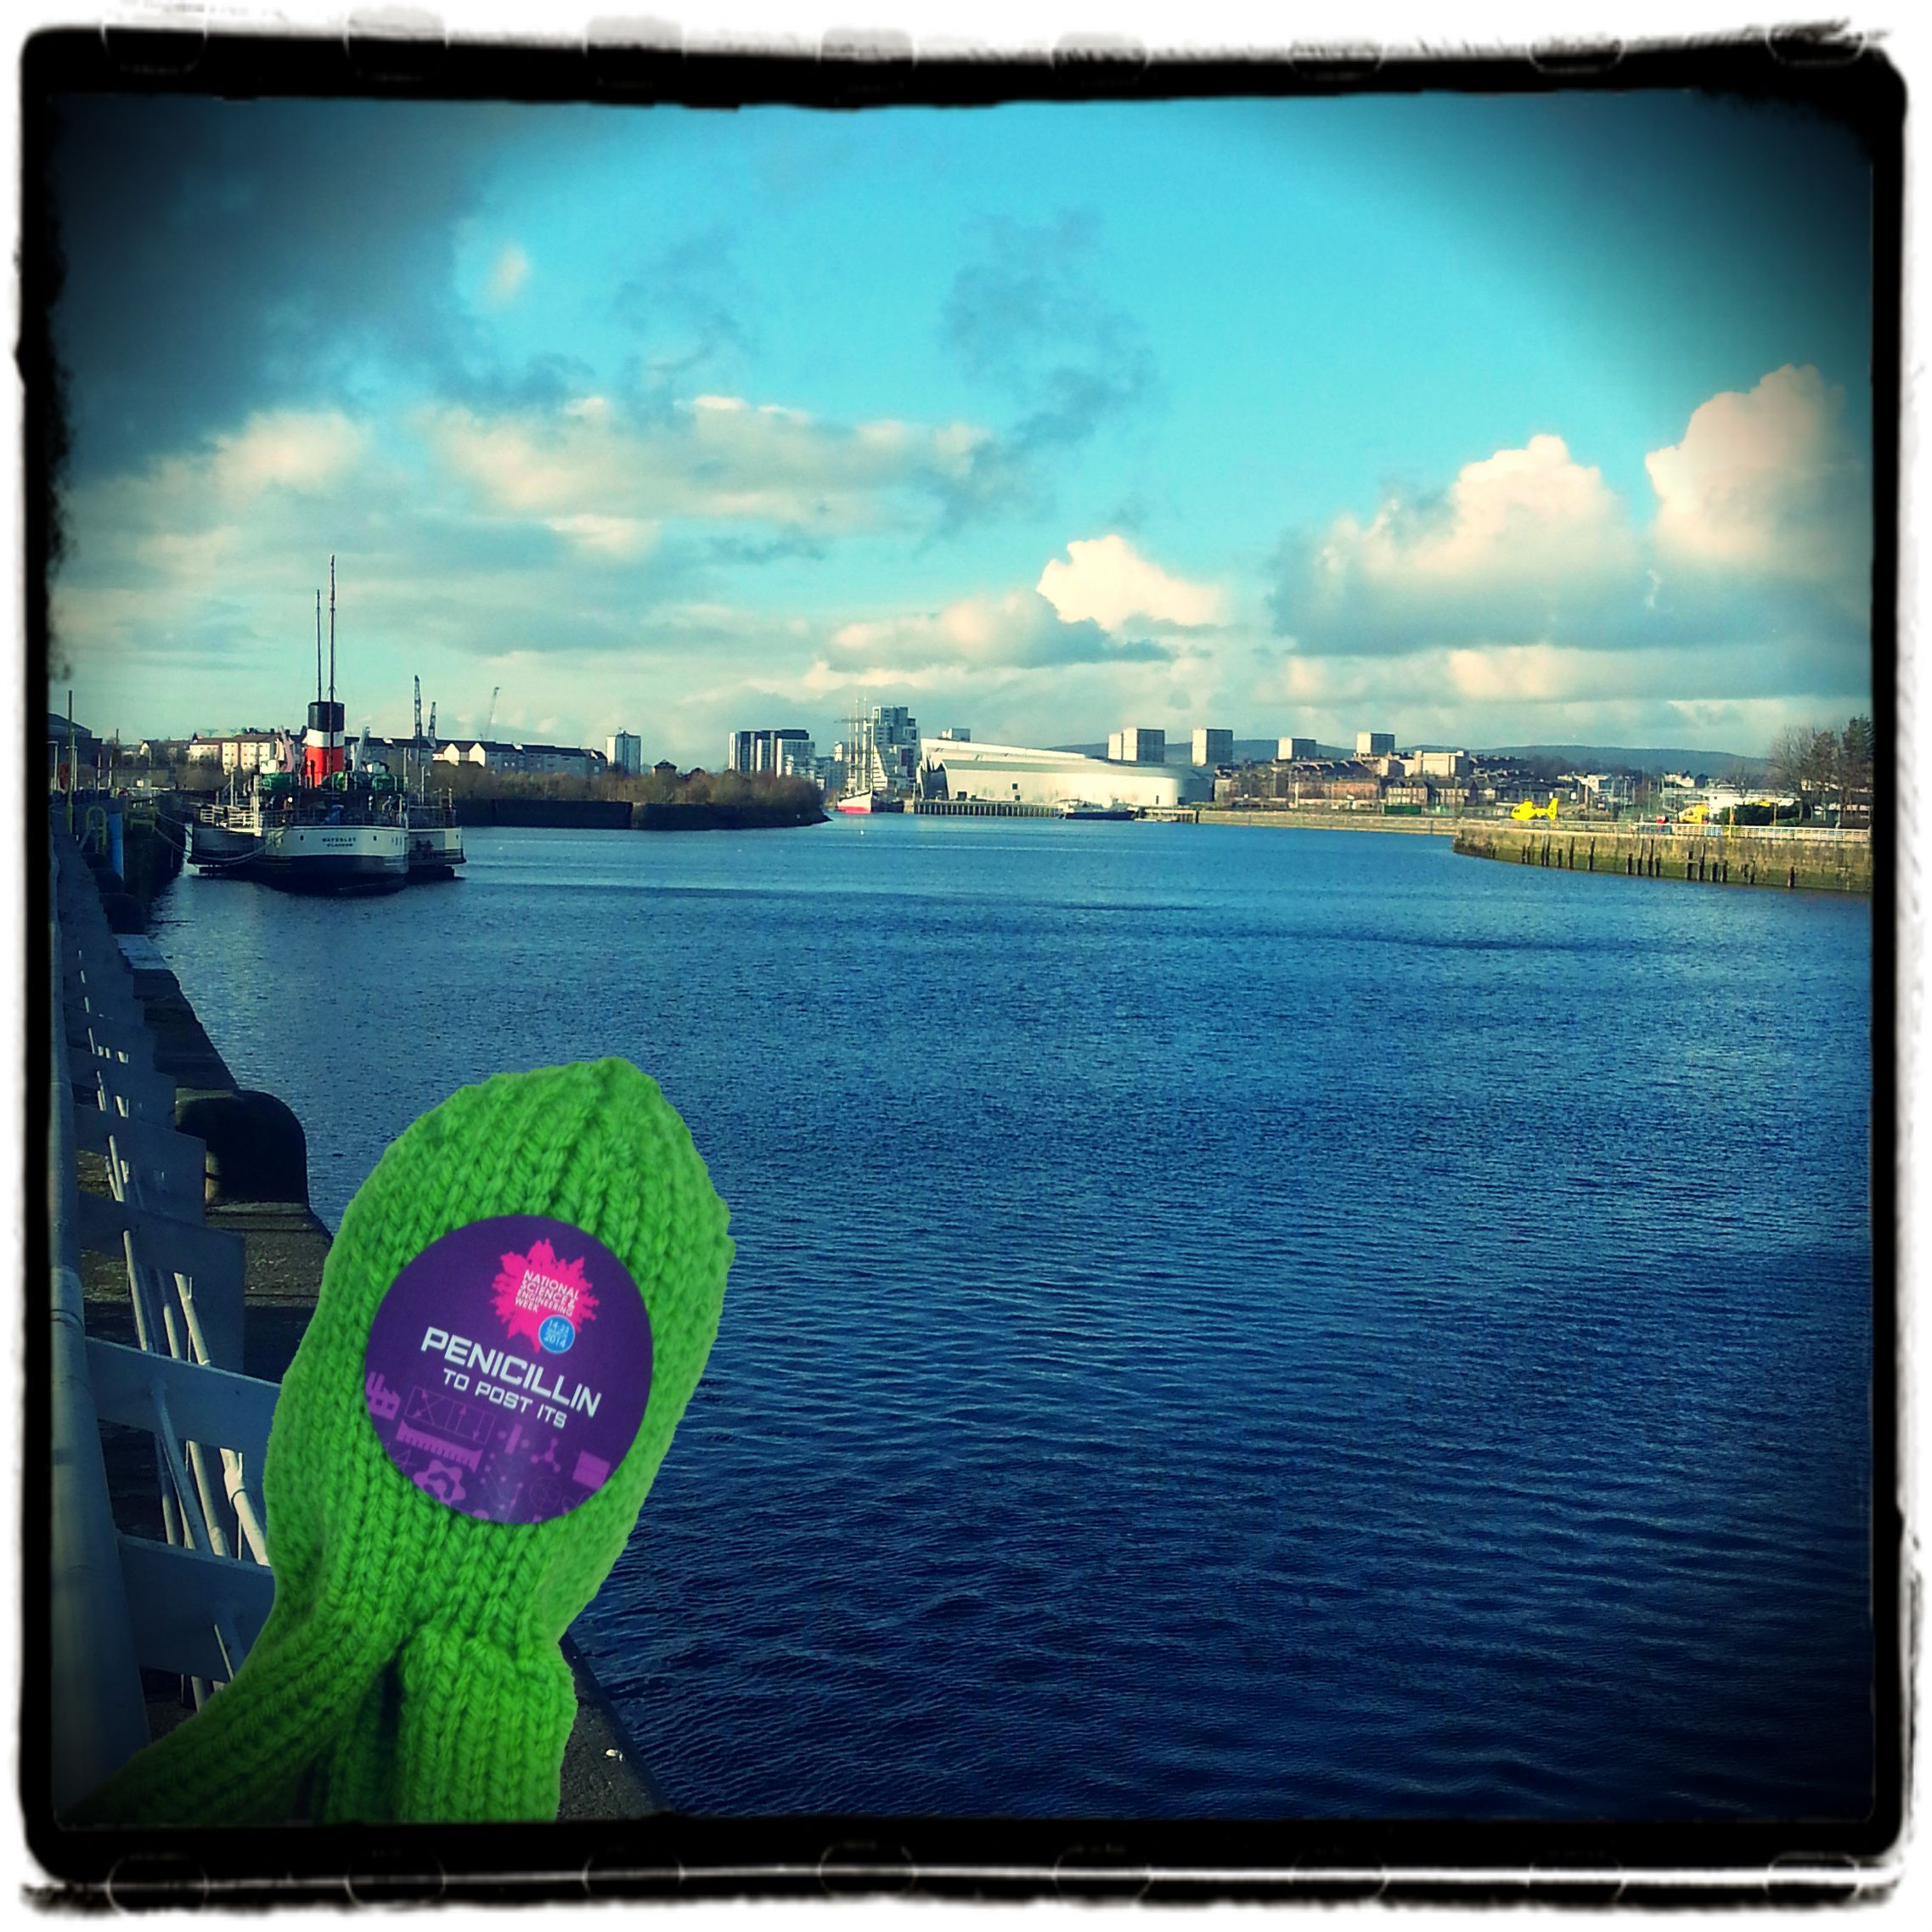 Dreamin' of going doon the water - wish I had some more mates to go with http://www.glasgowcityofscience.com/get-involved/knitting-microbes   #KnitMeAFriend  http://www.glasgowcityofscience.com/get-involved/knitting-microbes